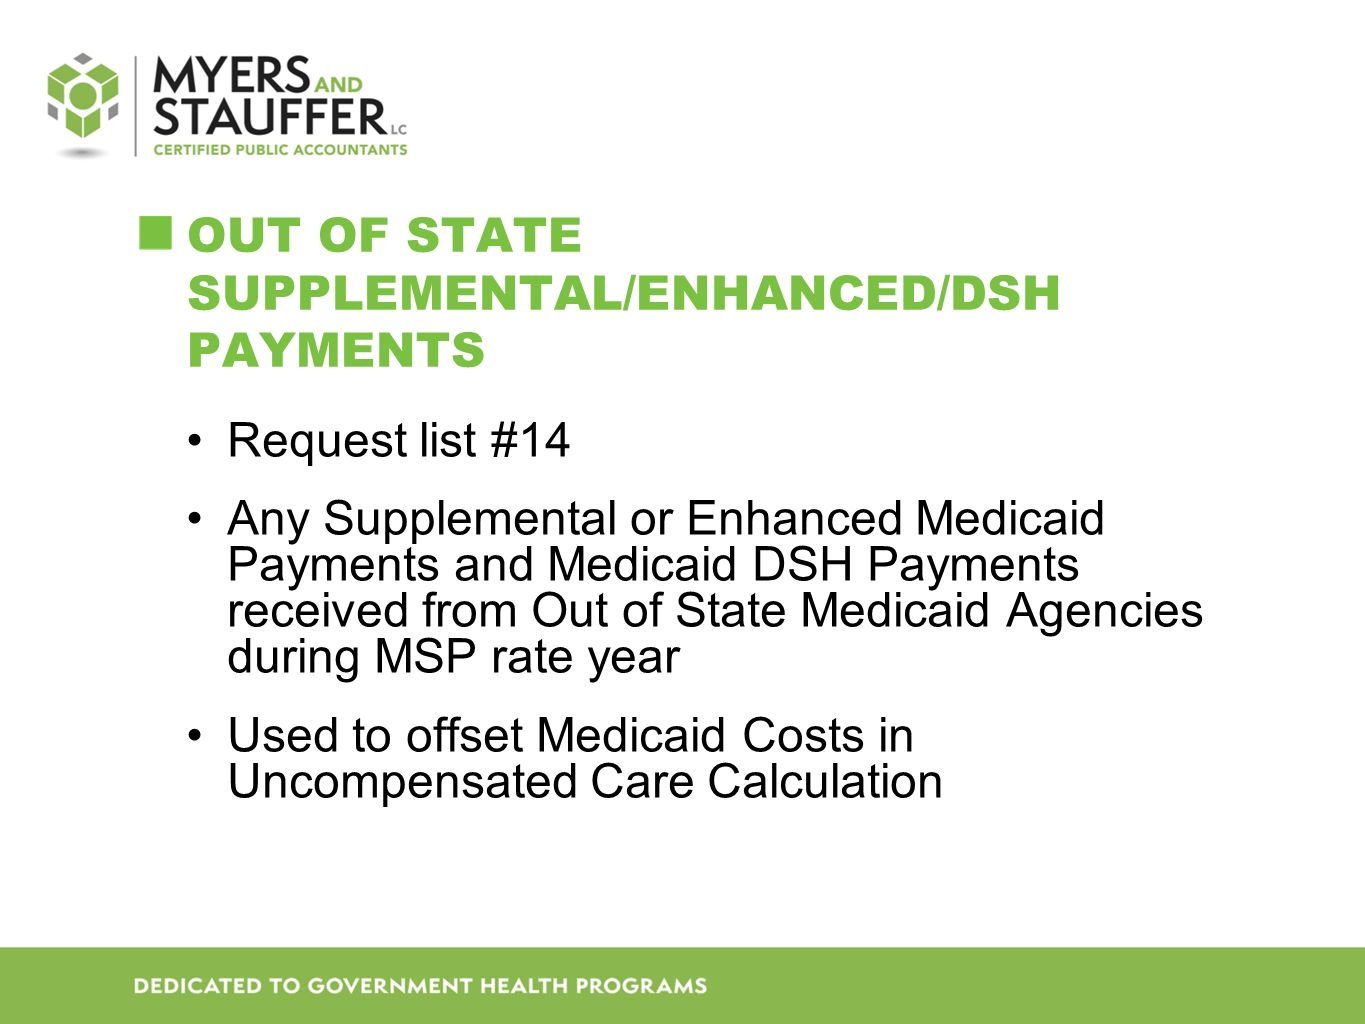 OUT OF STATE SUPPLEMENTAL/ENHANCED/DSH PAYMENTS Request list #14 Any Supplemental or Enhanced Medicaid Payments and Medicaid DSH Payments received from Out of State Medicaid Agencies during MSP rate year Used to offset Medicaid Costs in Uncompensated Care Calculation